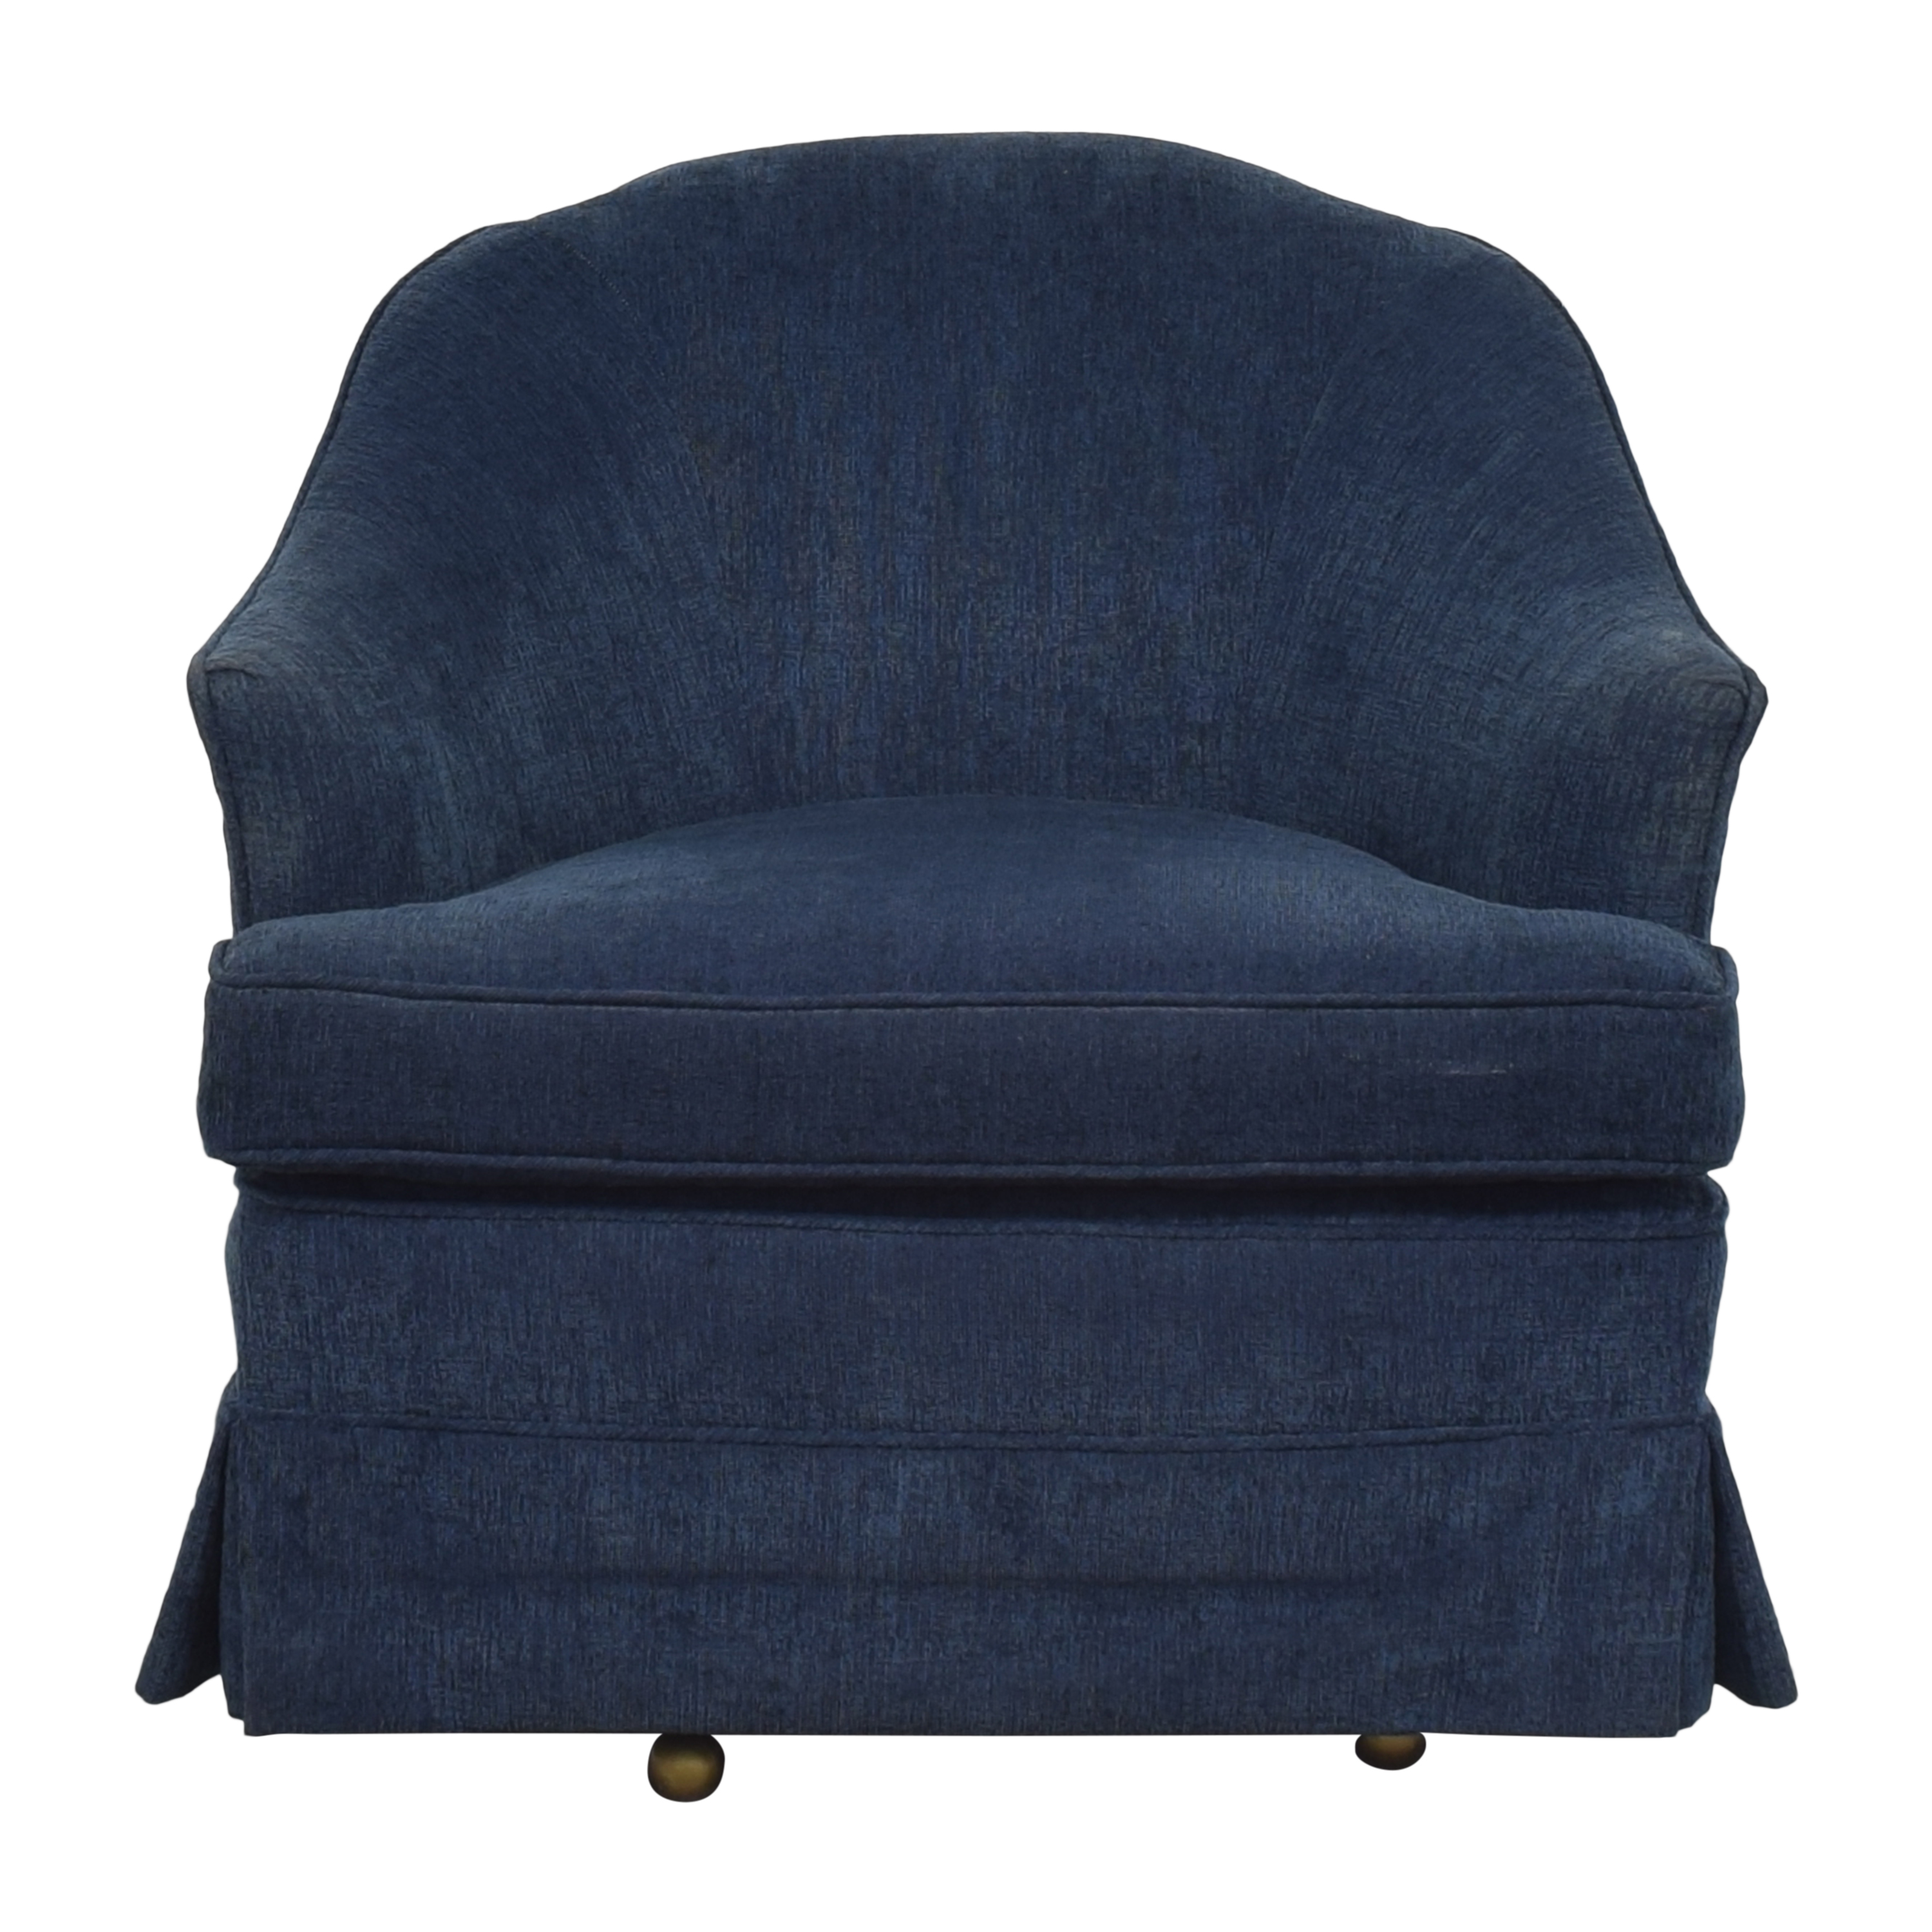 Carlyle Carlyle Upholstered Swivel Armchair nj